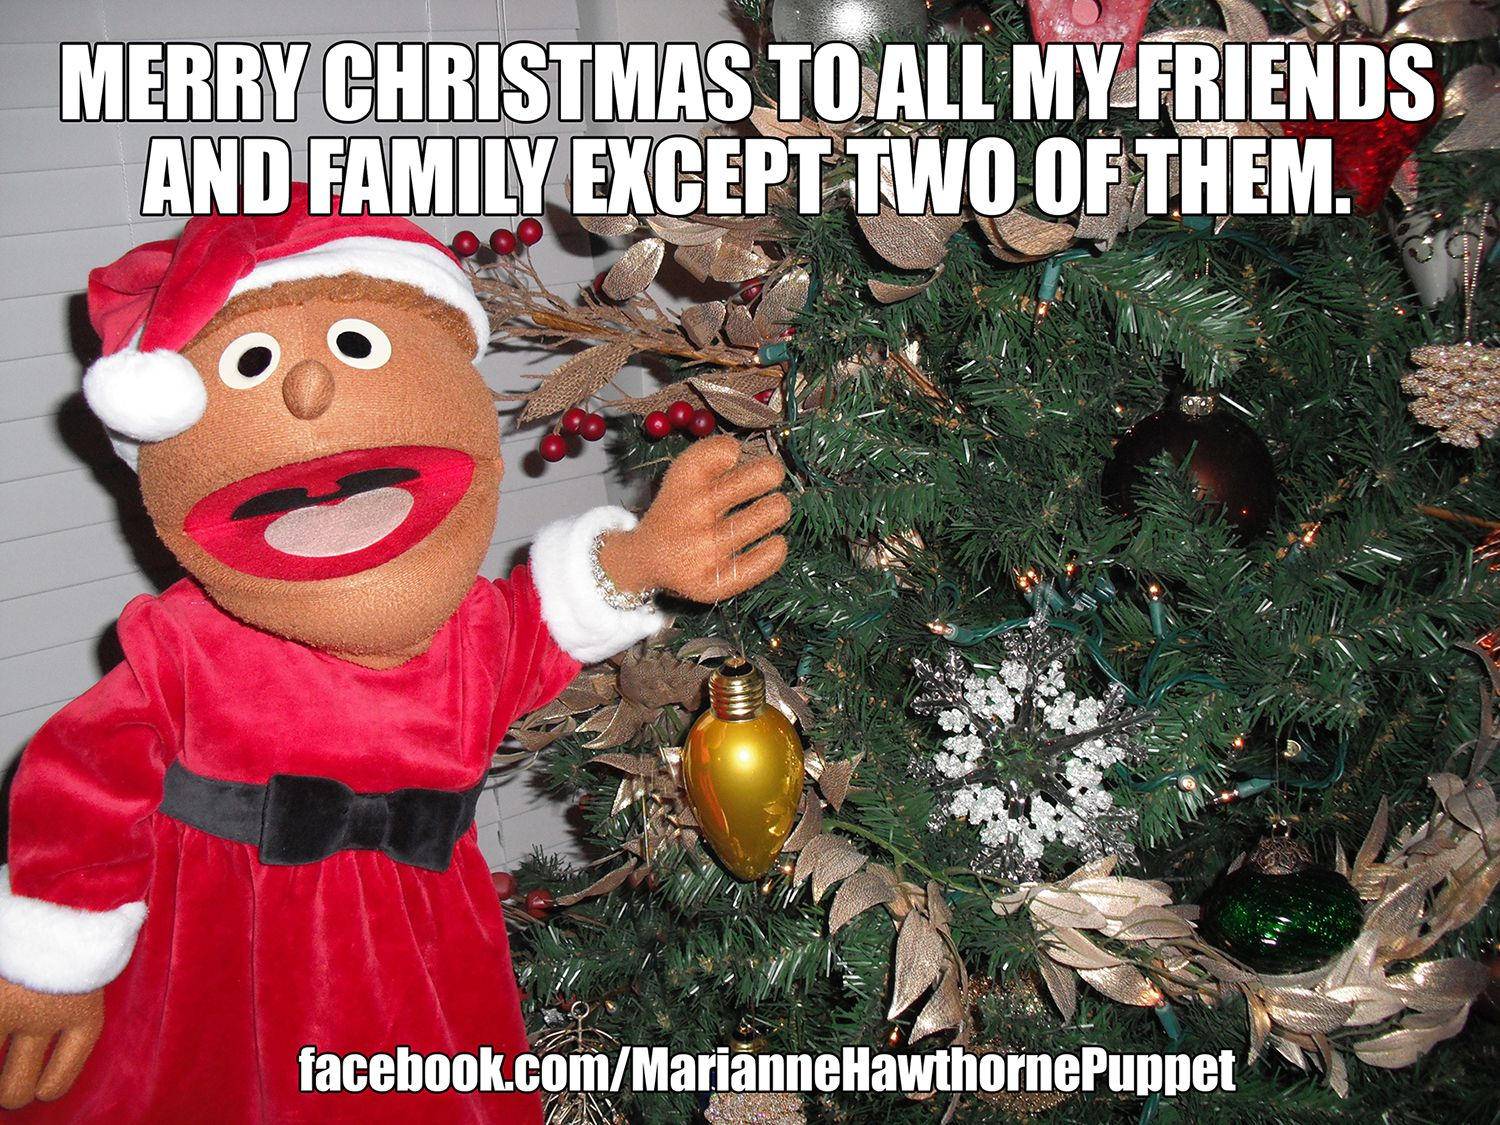 Funny Christmas Memes For Friends : Merry christmas to all my friends and family except two of them